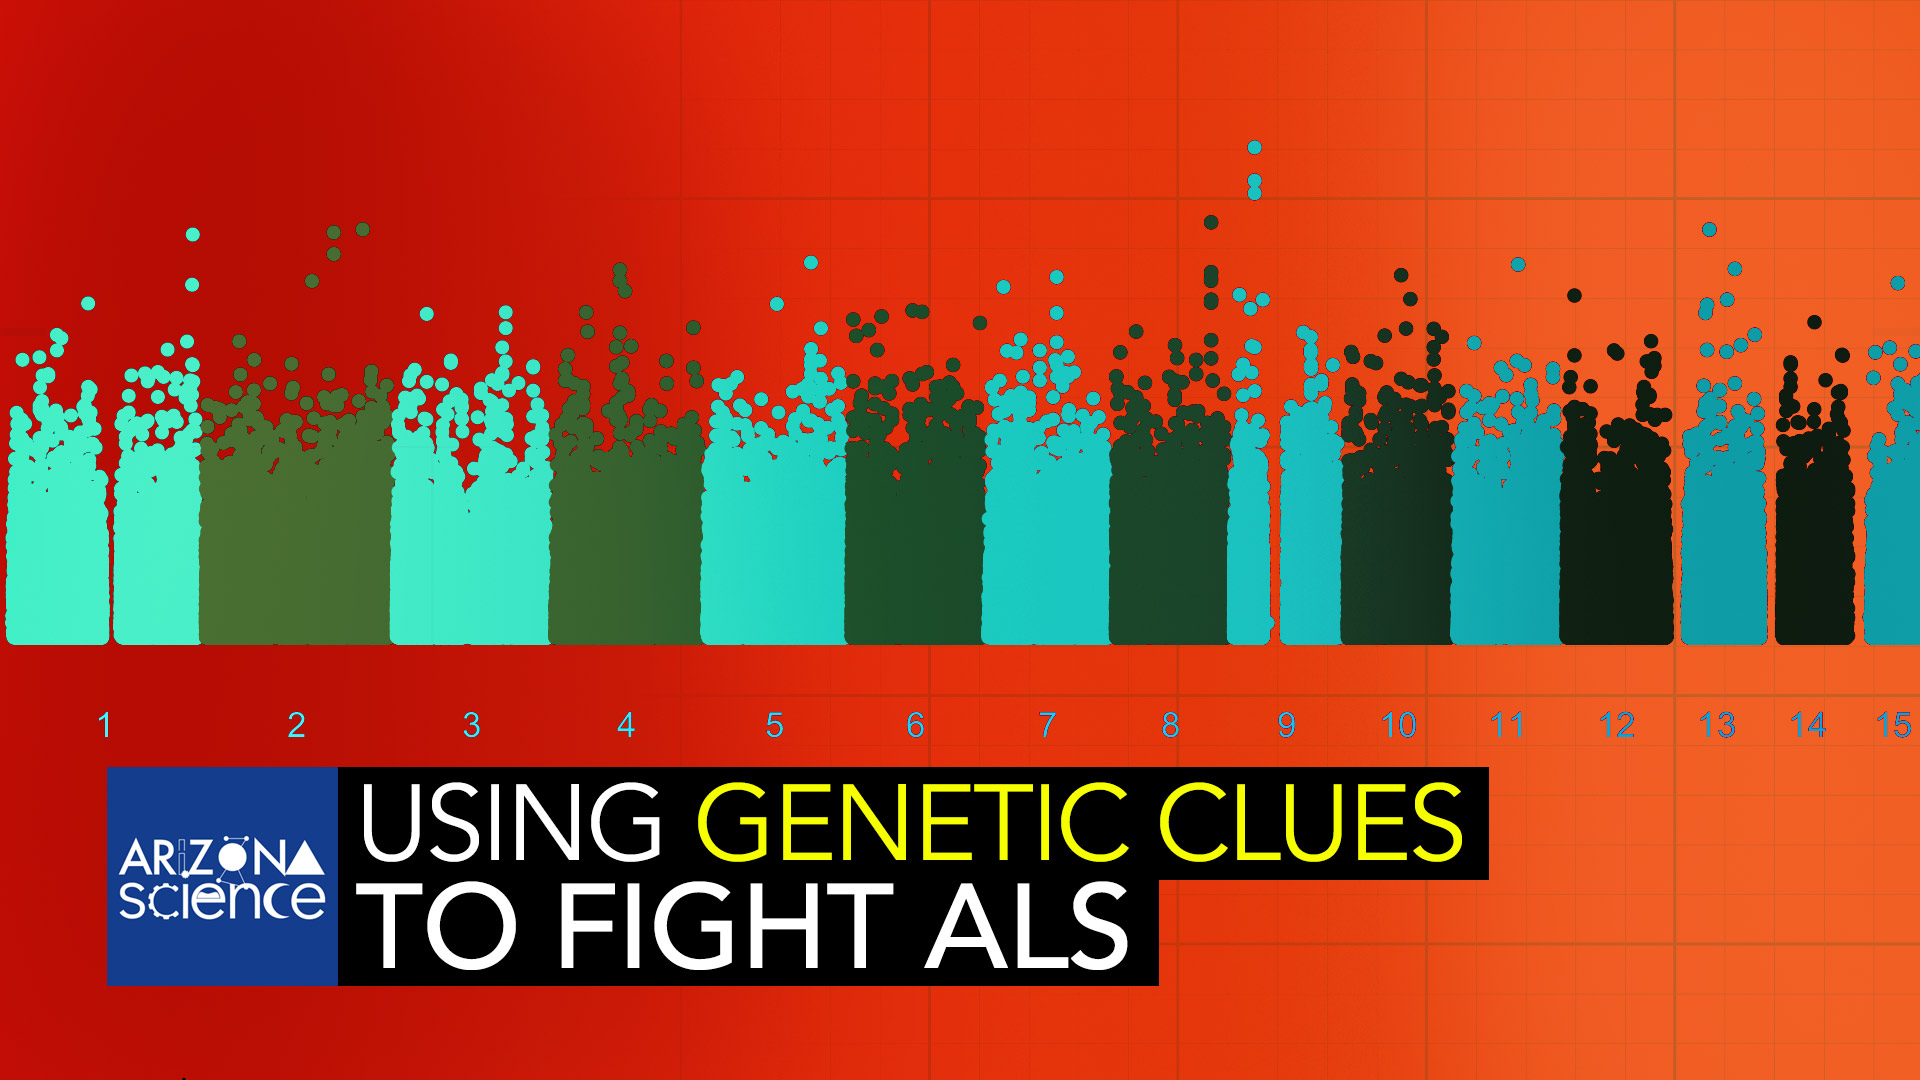 U of A molecular biologist Daniela Zarnescu is using a catalog of genetic information to help provide clues in the battle against ALS.